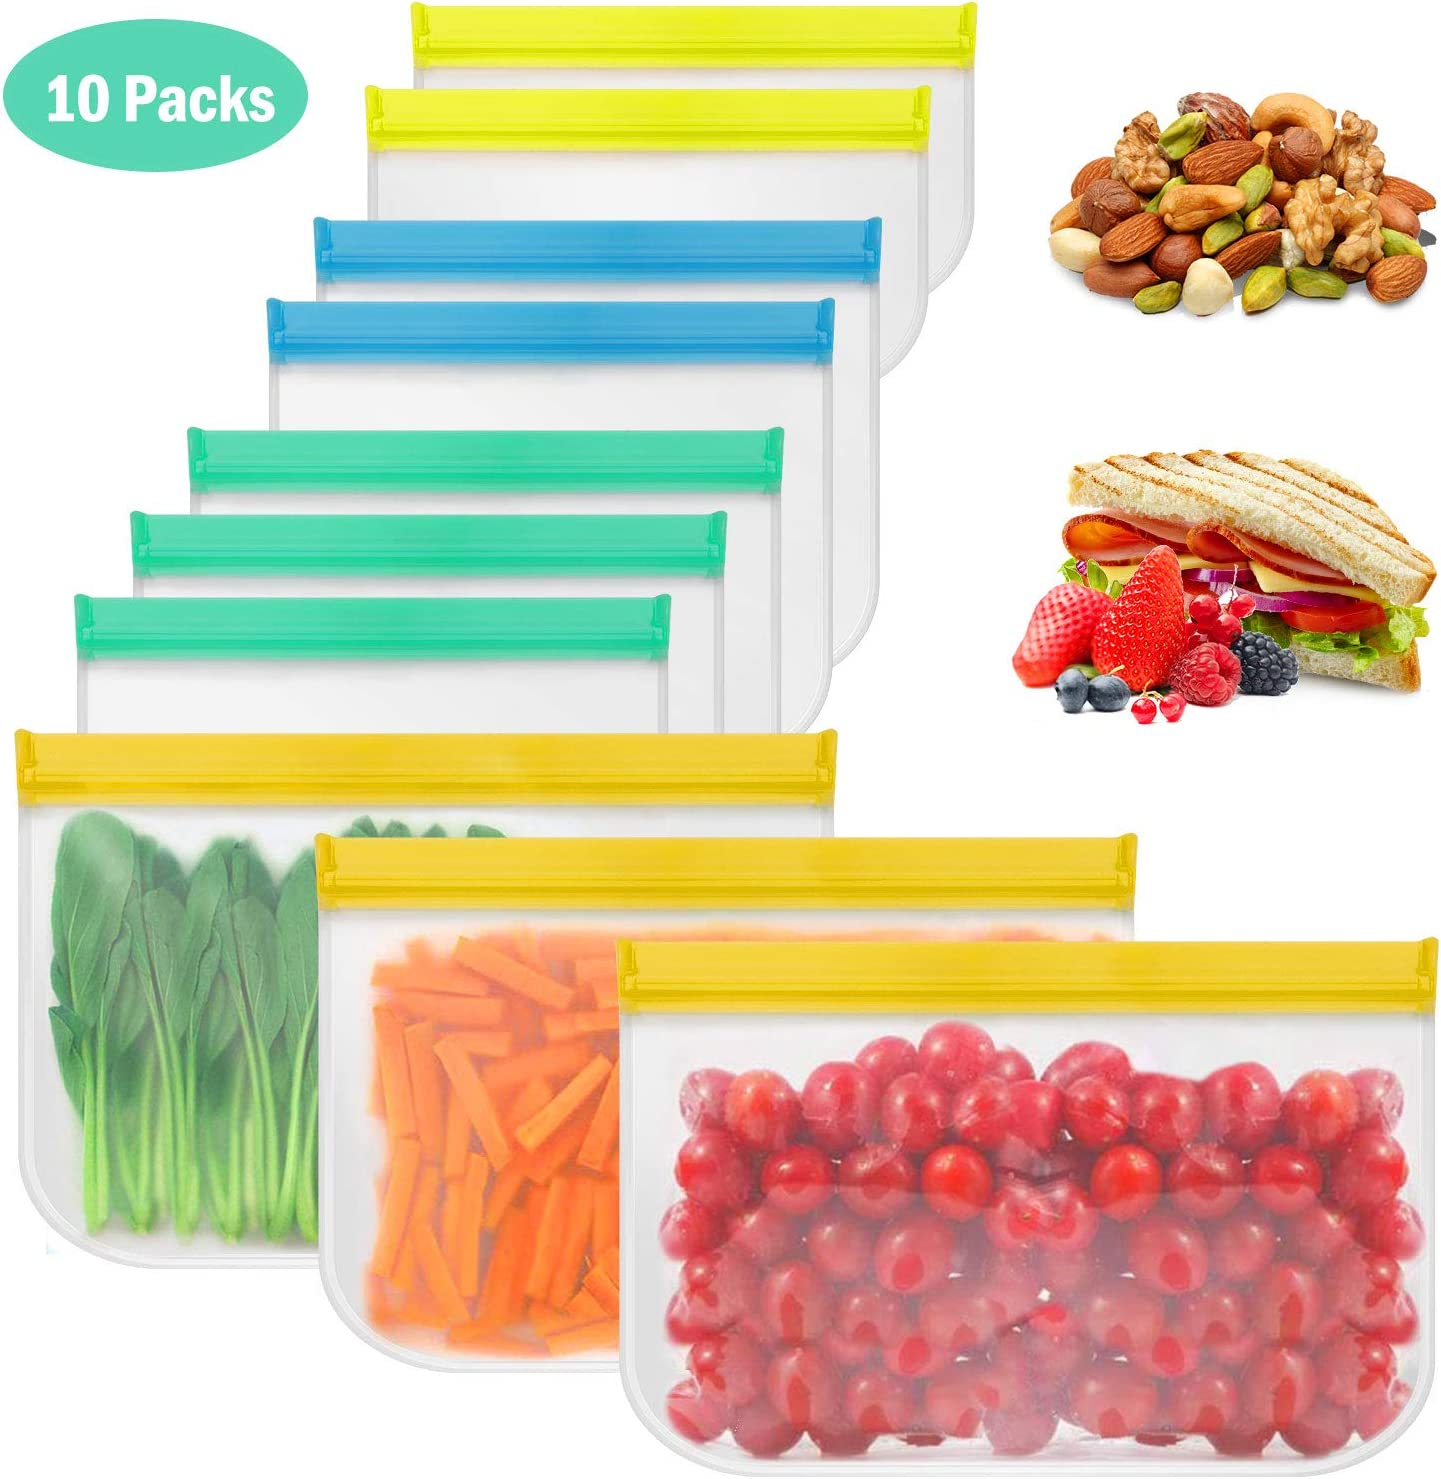 Henscoqi 10 Pack Reusable Storage Bags-BPA Free Reusable Gallon Bags Leakproof Sandwich Bags Ziplock Freezer Snack Lunch Bags for Vegetables Fruit Cereal, Baby/Pet Food, Travel Items, Home Organize